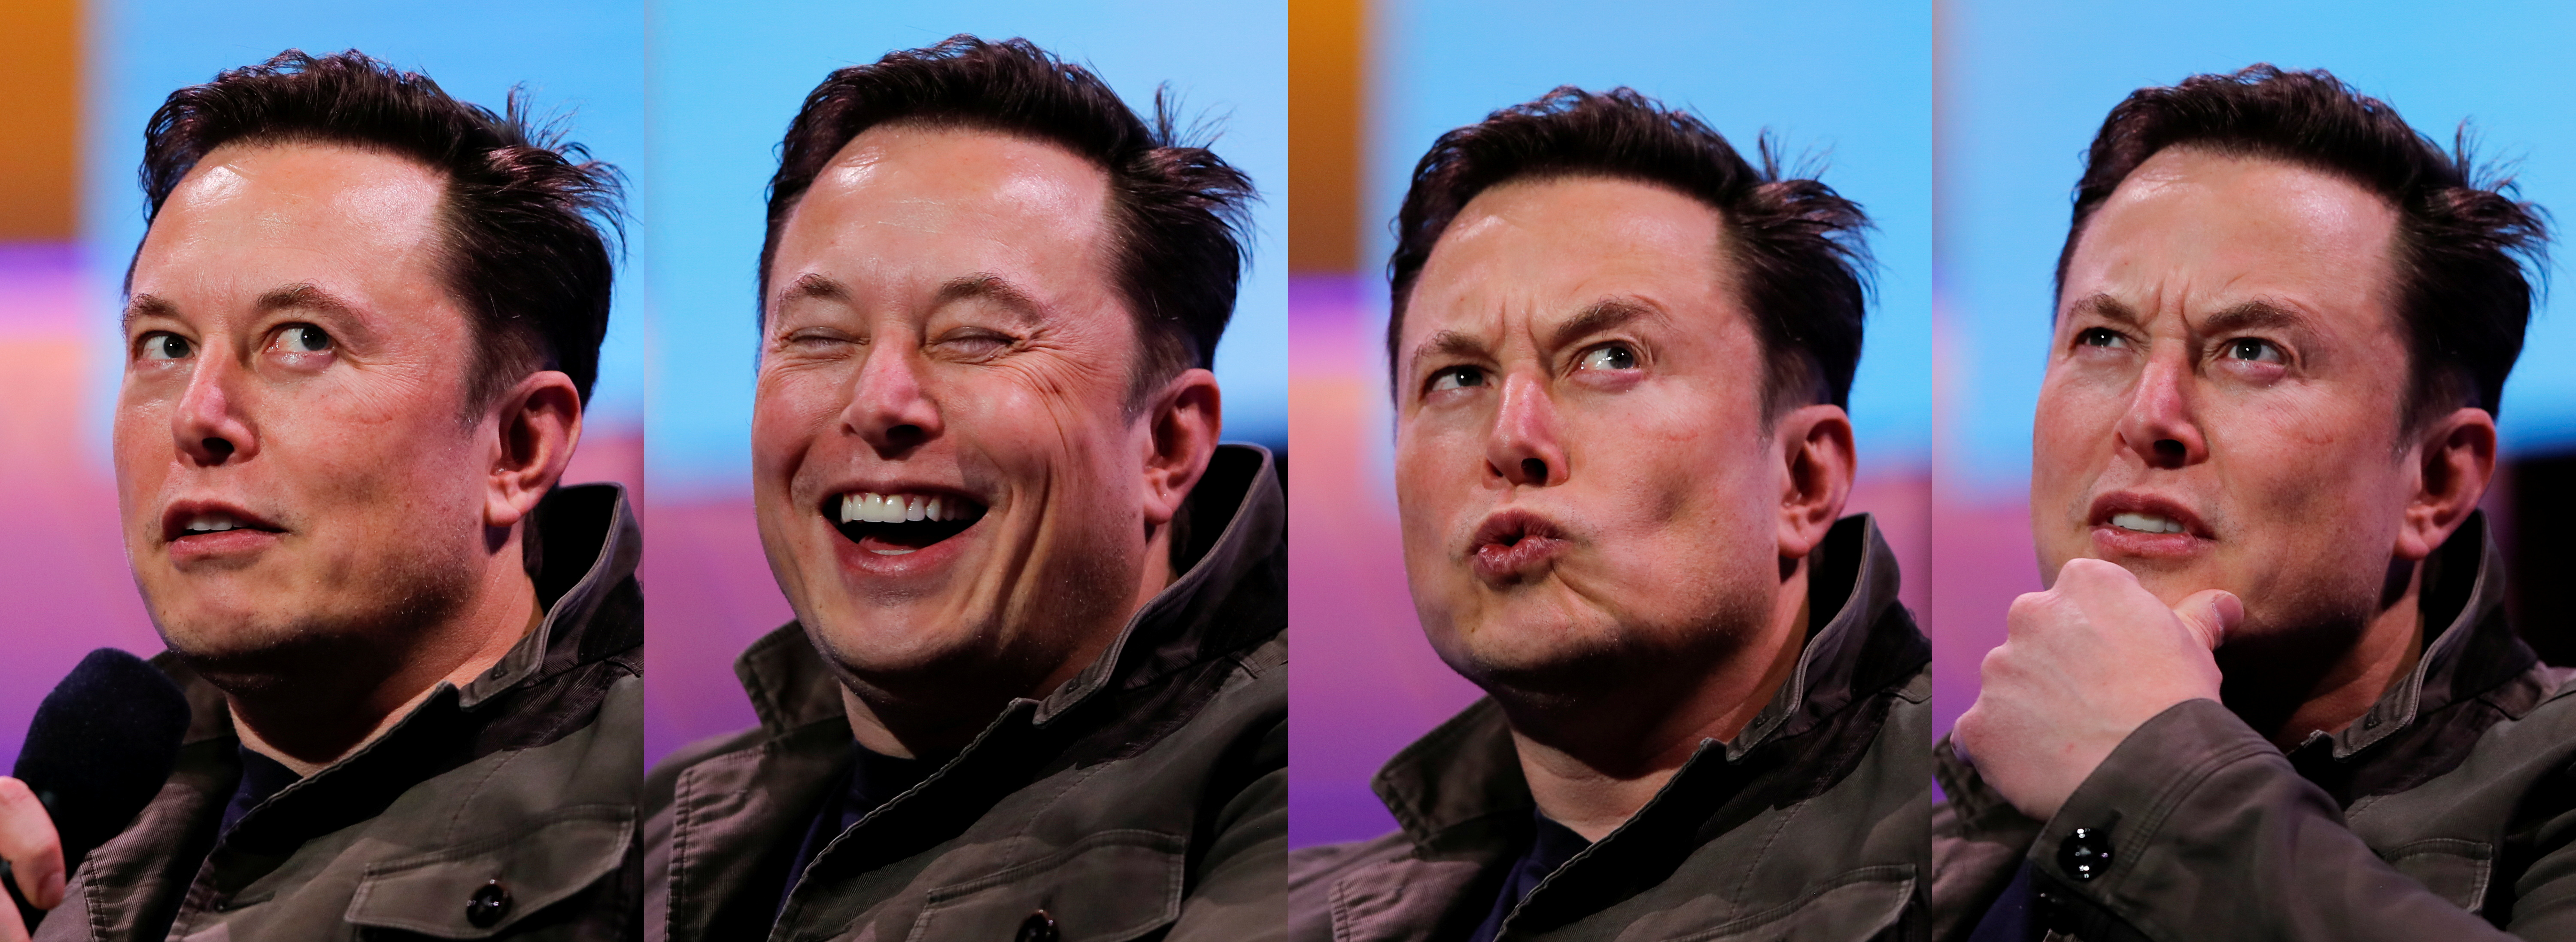 A combination picture shows SpaceX owner and Tesla CEO Elon Musk speaking during a conversation with legendary game designer Todd Howard (not pictured) at the E3 gaming convention in Los Angeles, California, U.S., June 13, 2019.  REUTERS/Mike Blake/File Photo